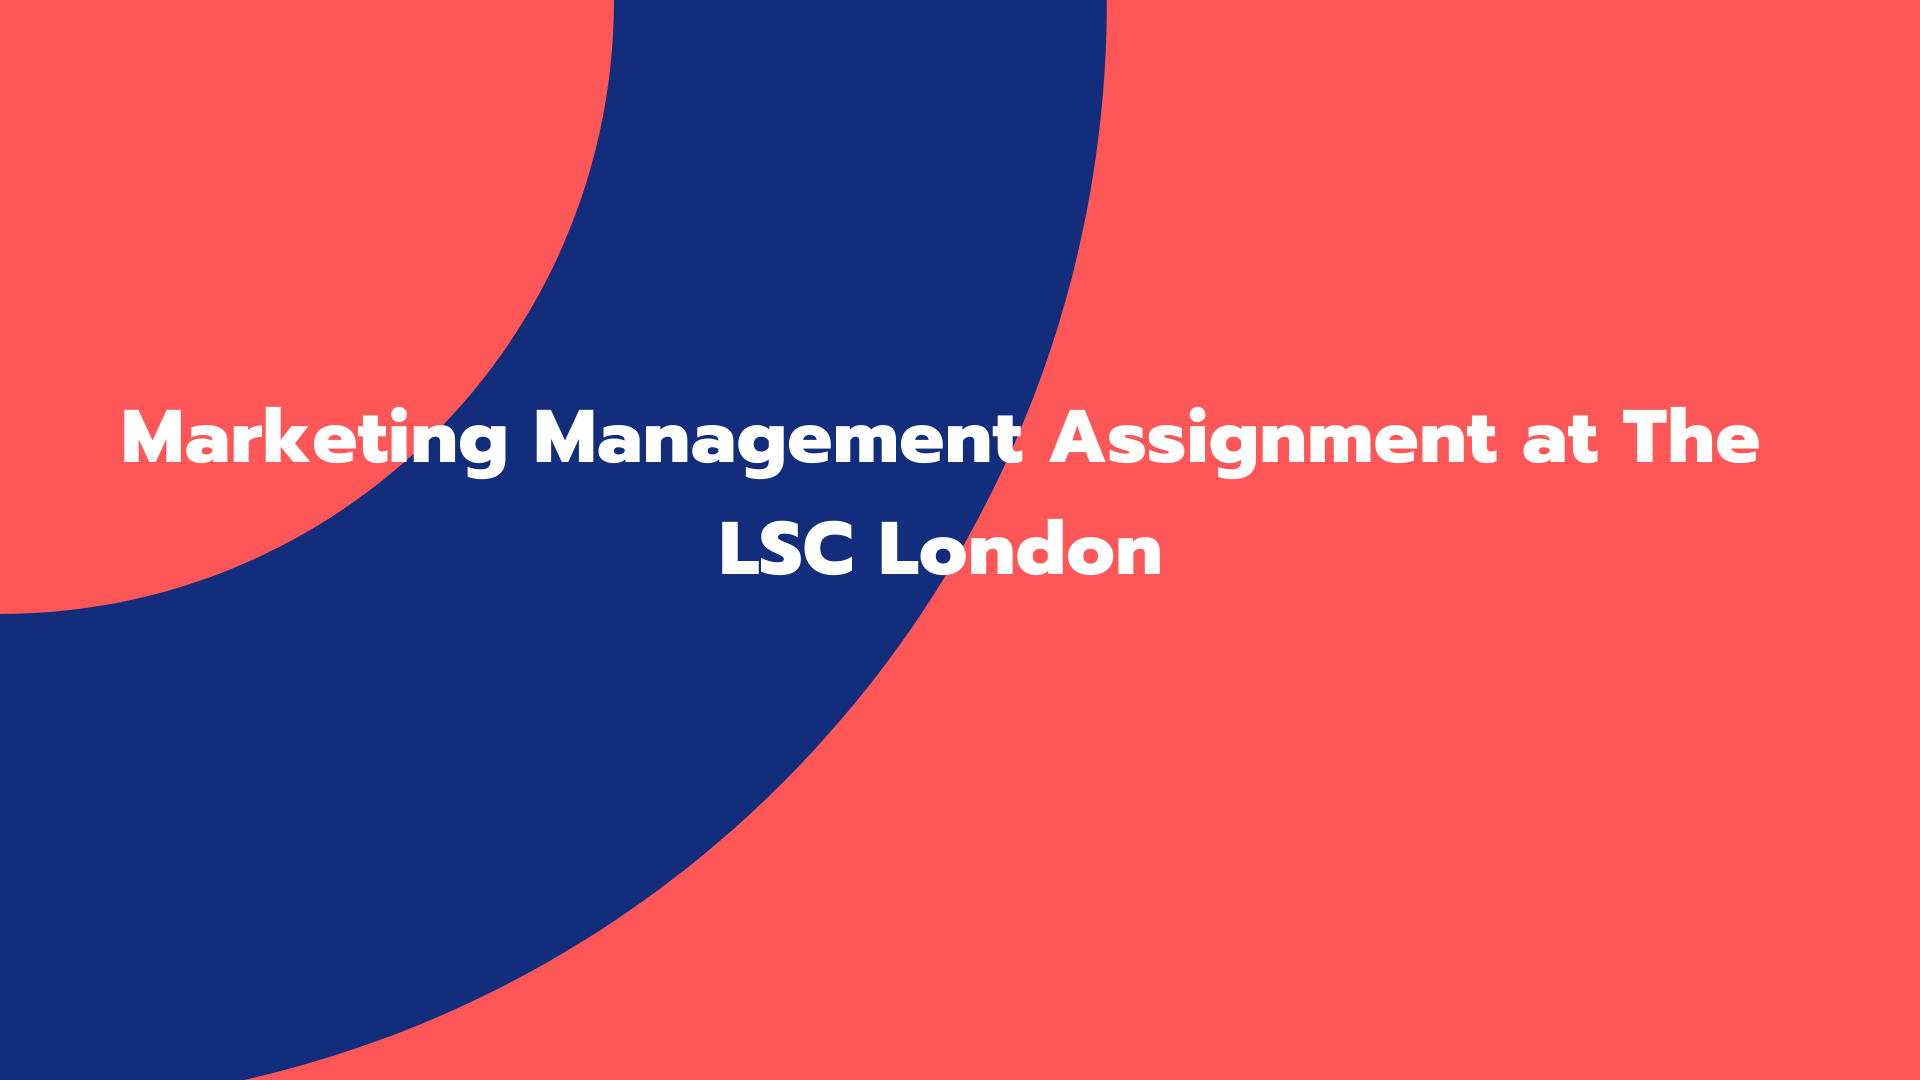 Marketing Management Assignment at The LSC London